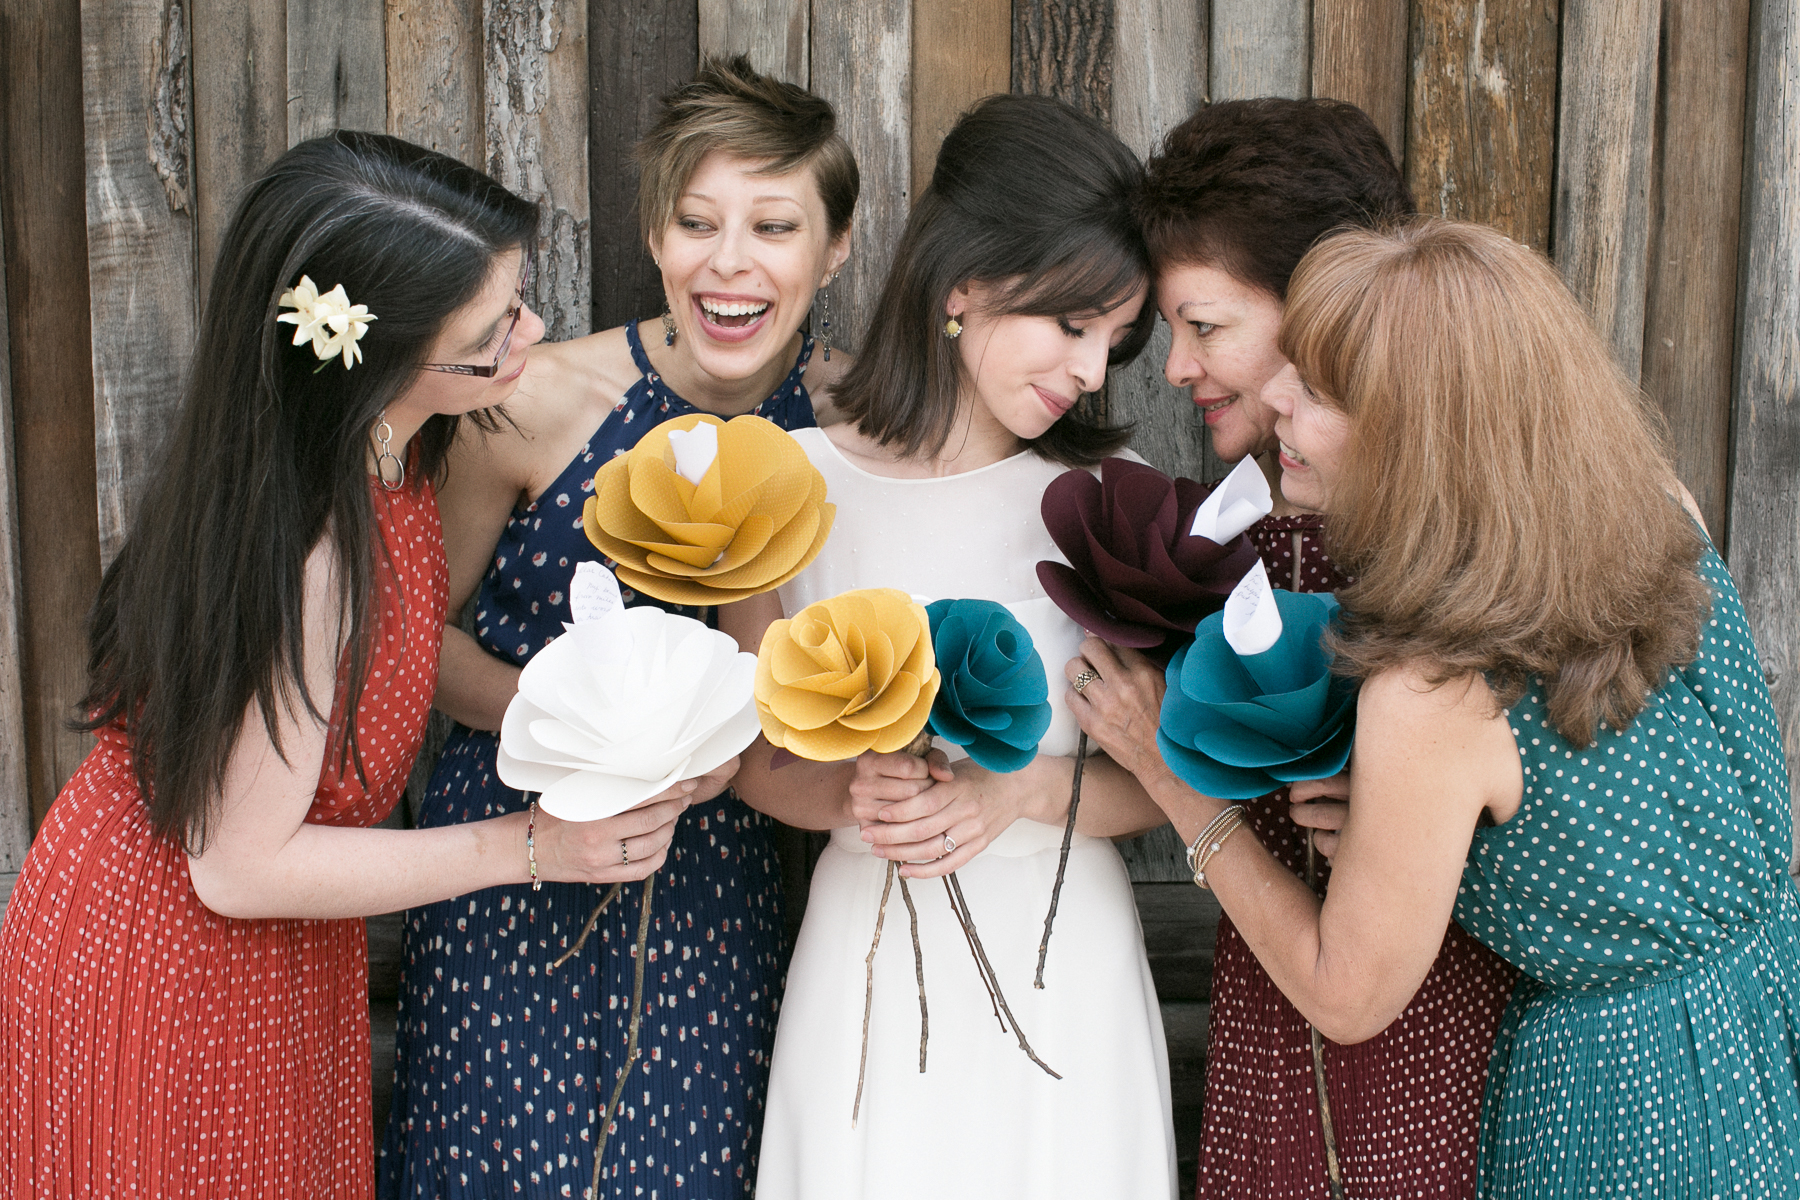 The bride and her bridesmaids before the ceremony holding custom bouquets